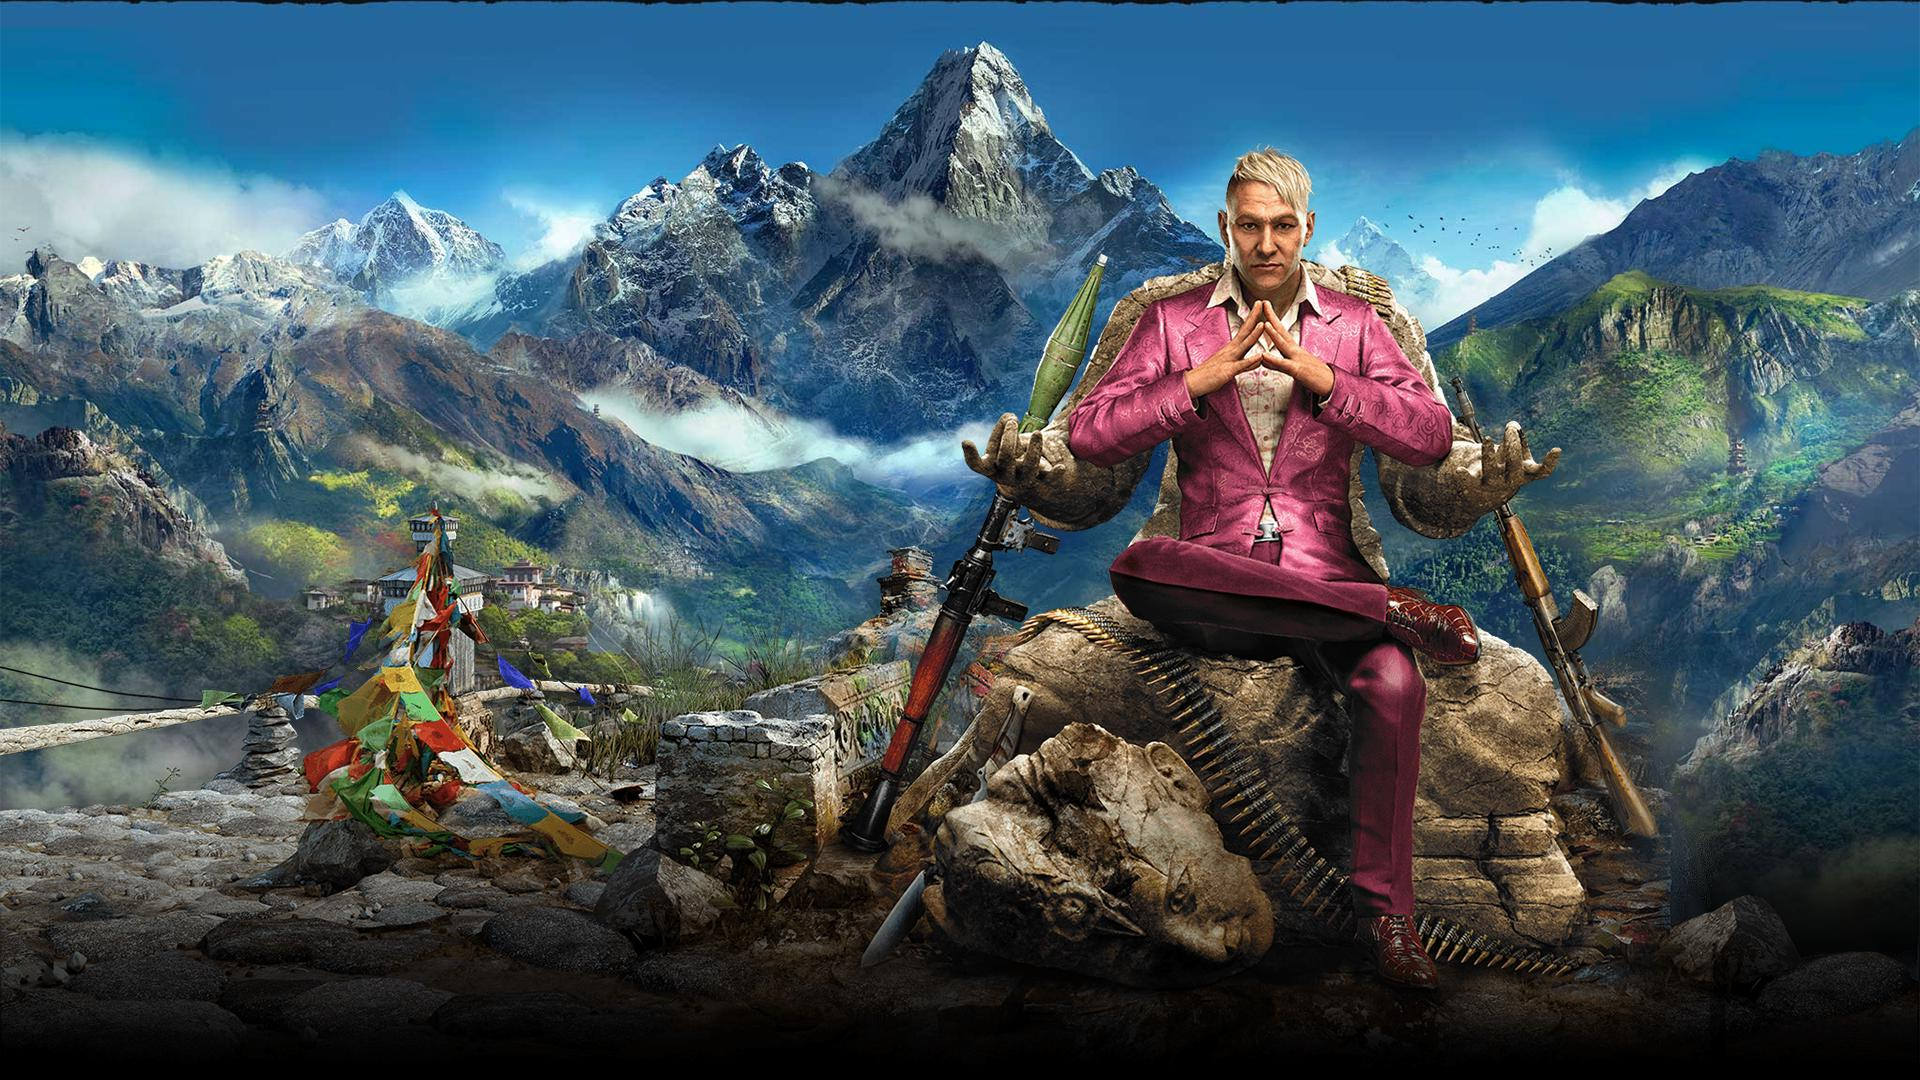 far cry 4 hd wallpaper wallpapersafari. Black Bedroom Furniture Sets. Home Design Ideas